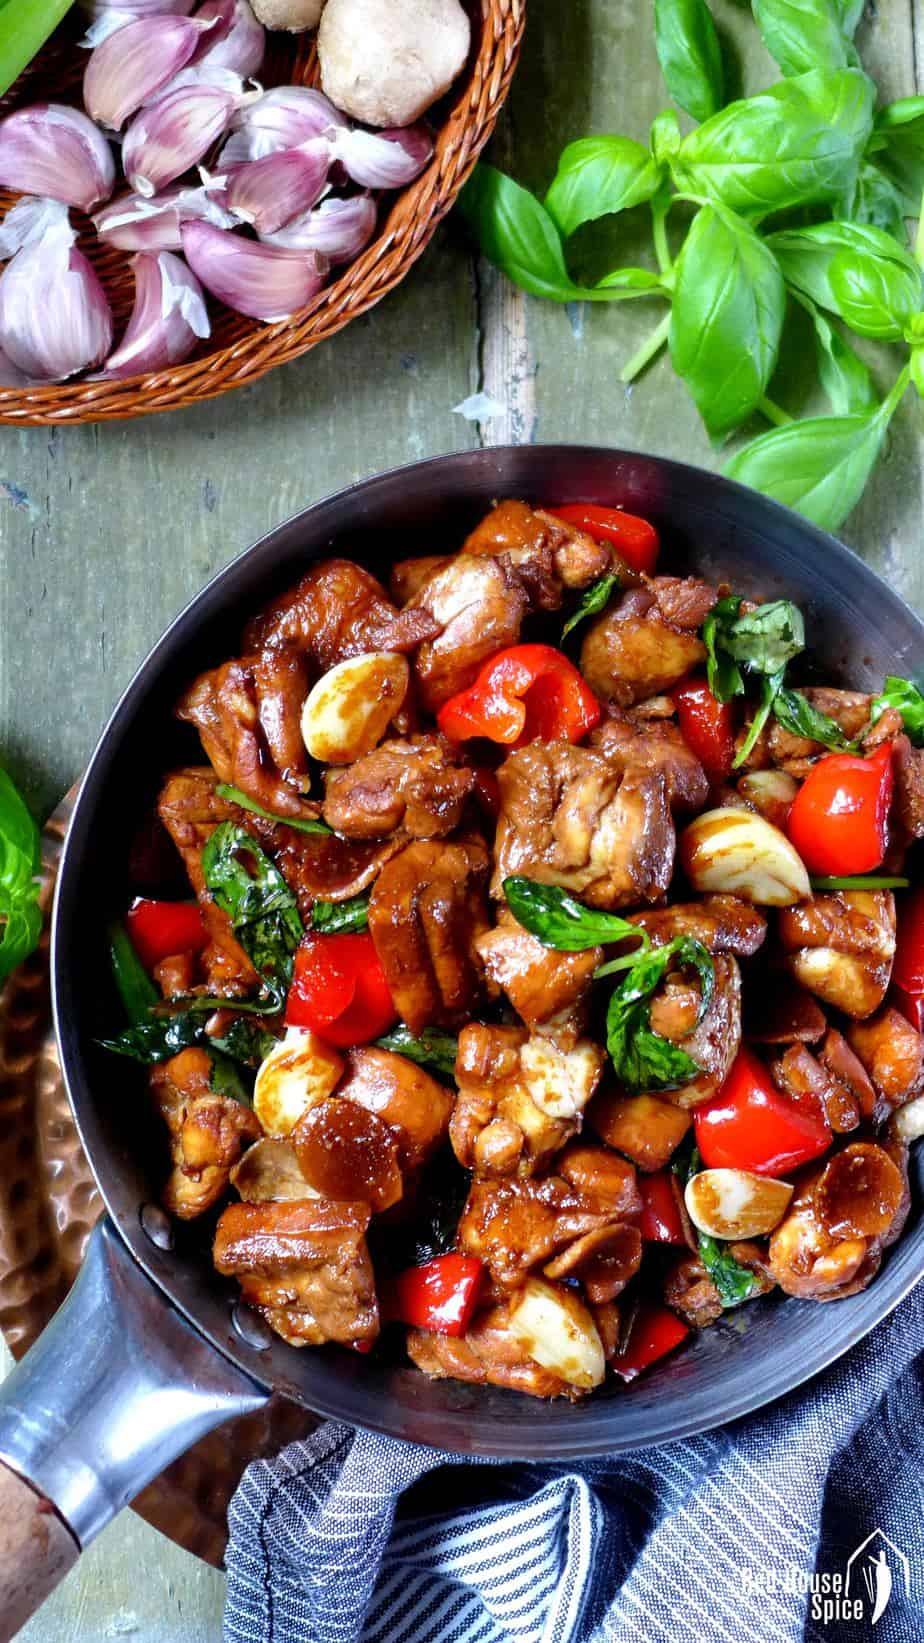 Taiwanese three cup chicken in a wok